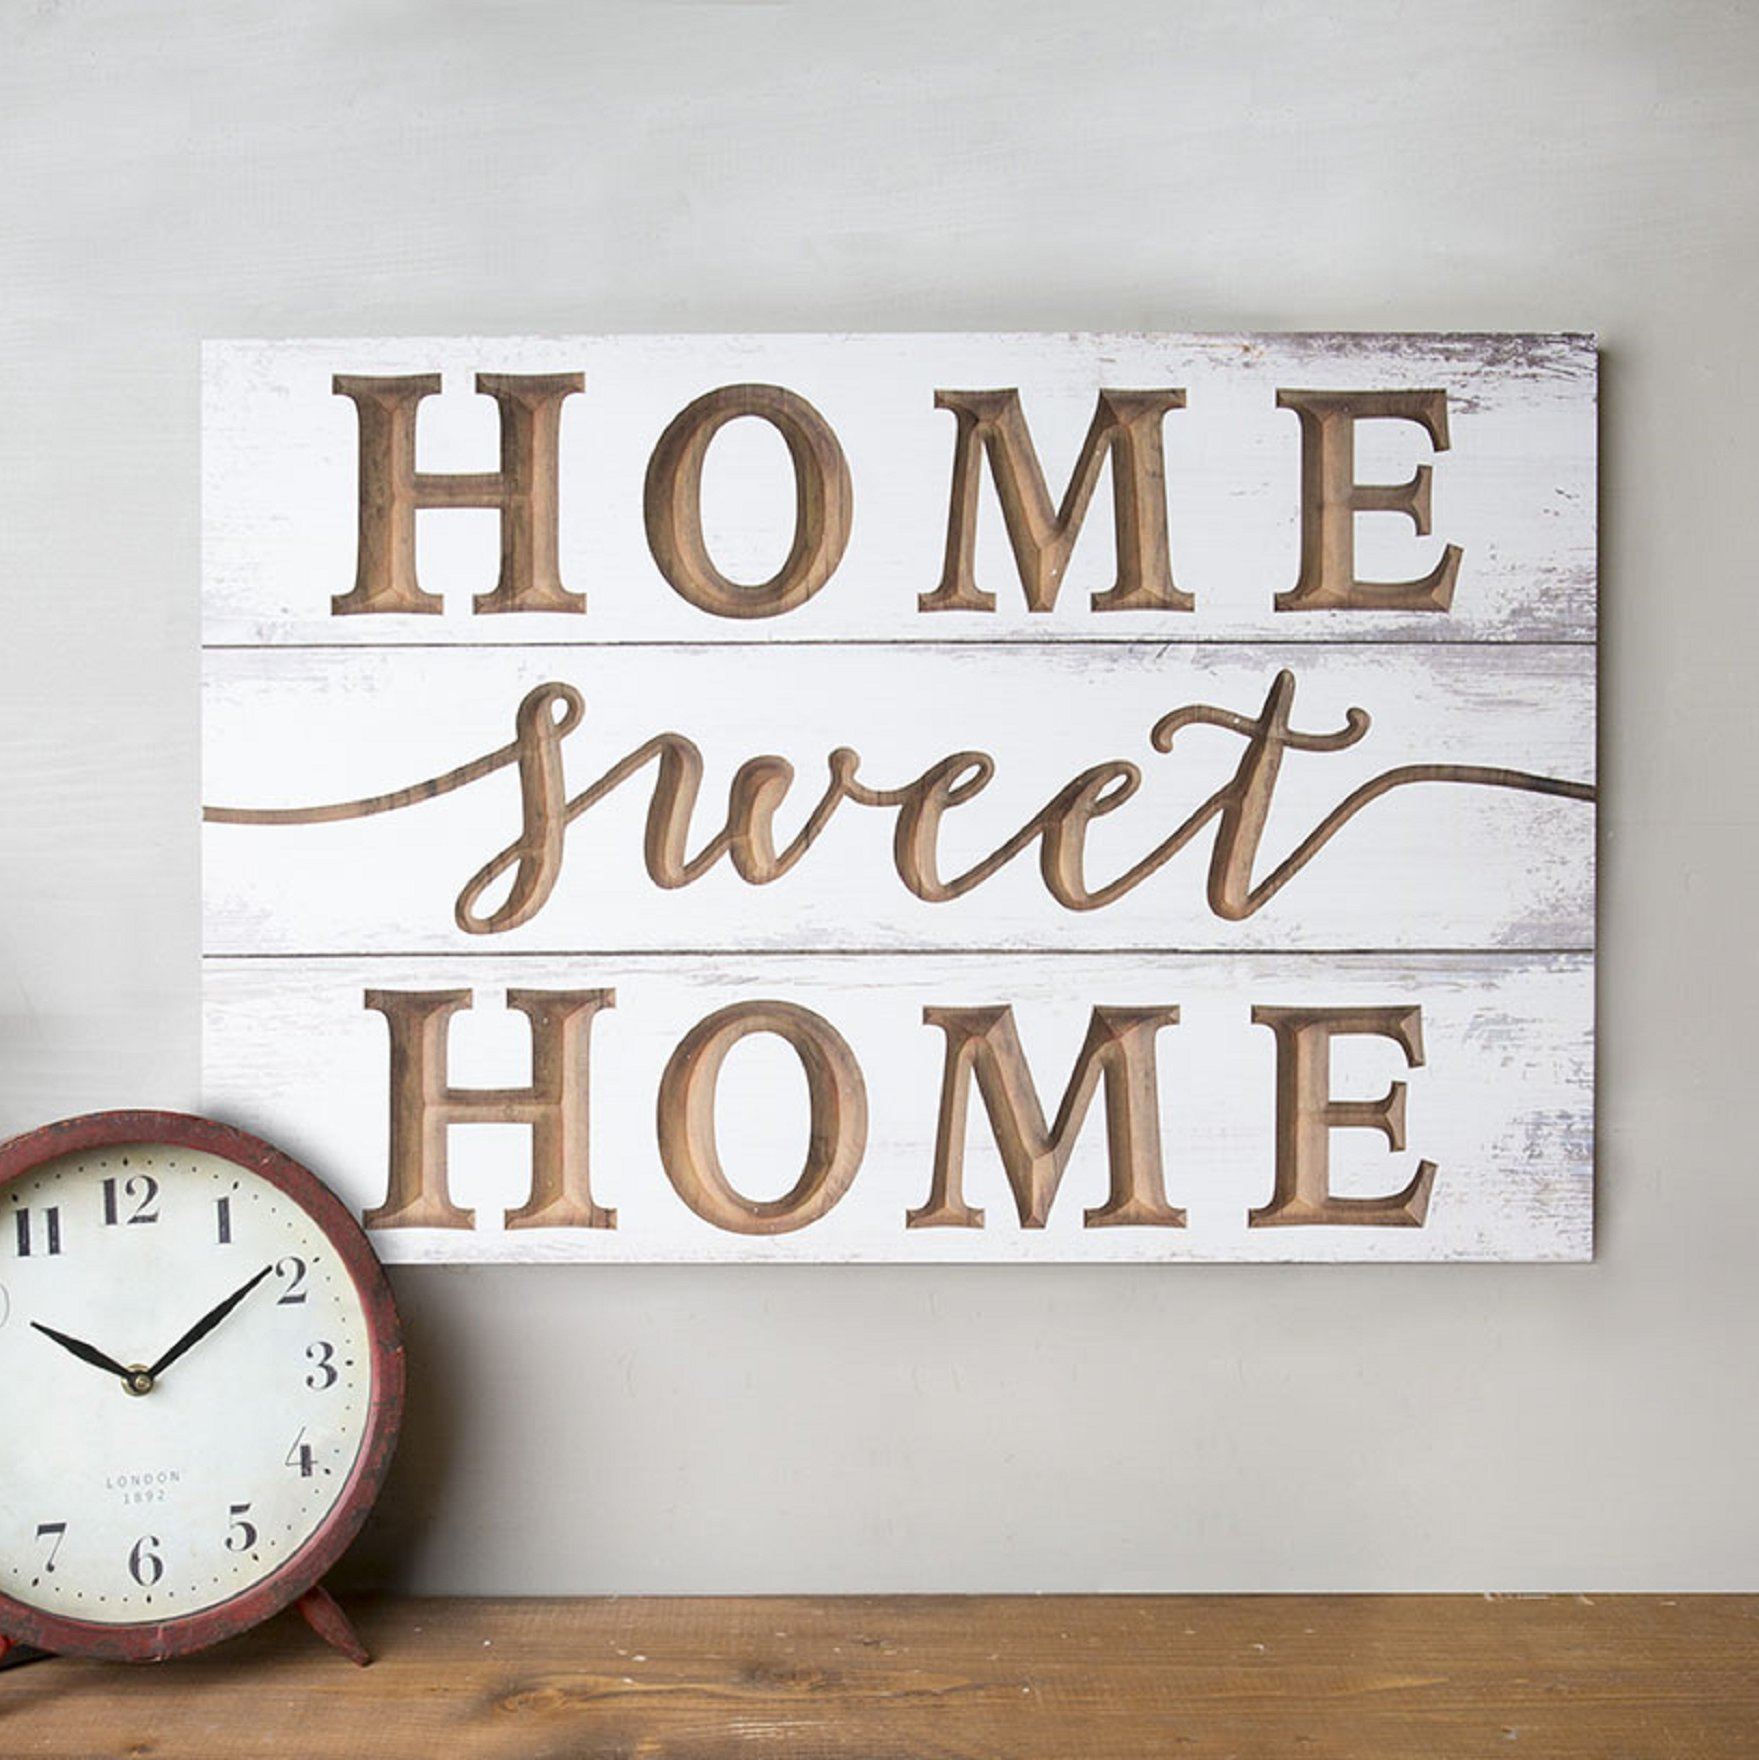 Home Sweet Home Wall Decor | Wayfair Inside Laser Engraved Home Sweet Home Wall Decor (View 3 of 30)